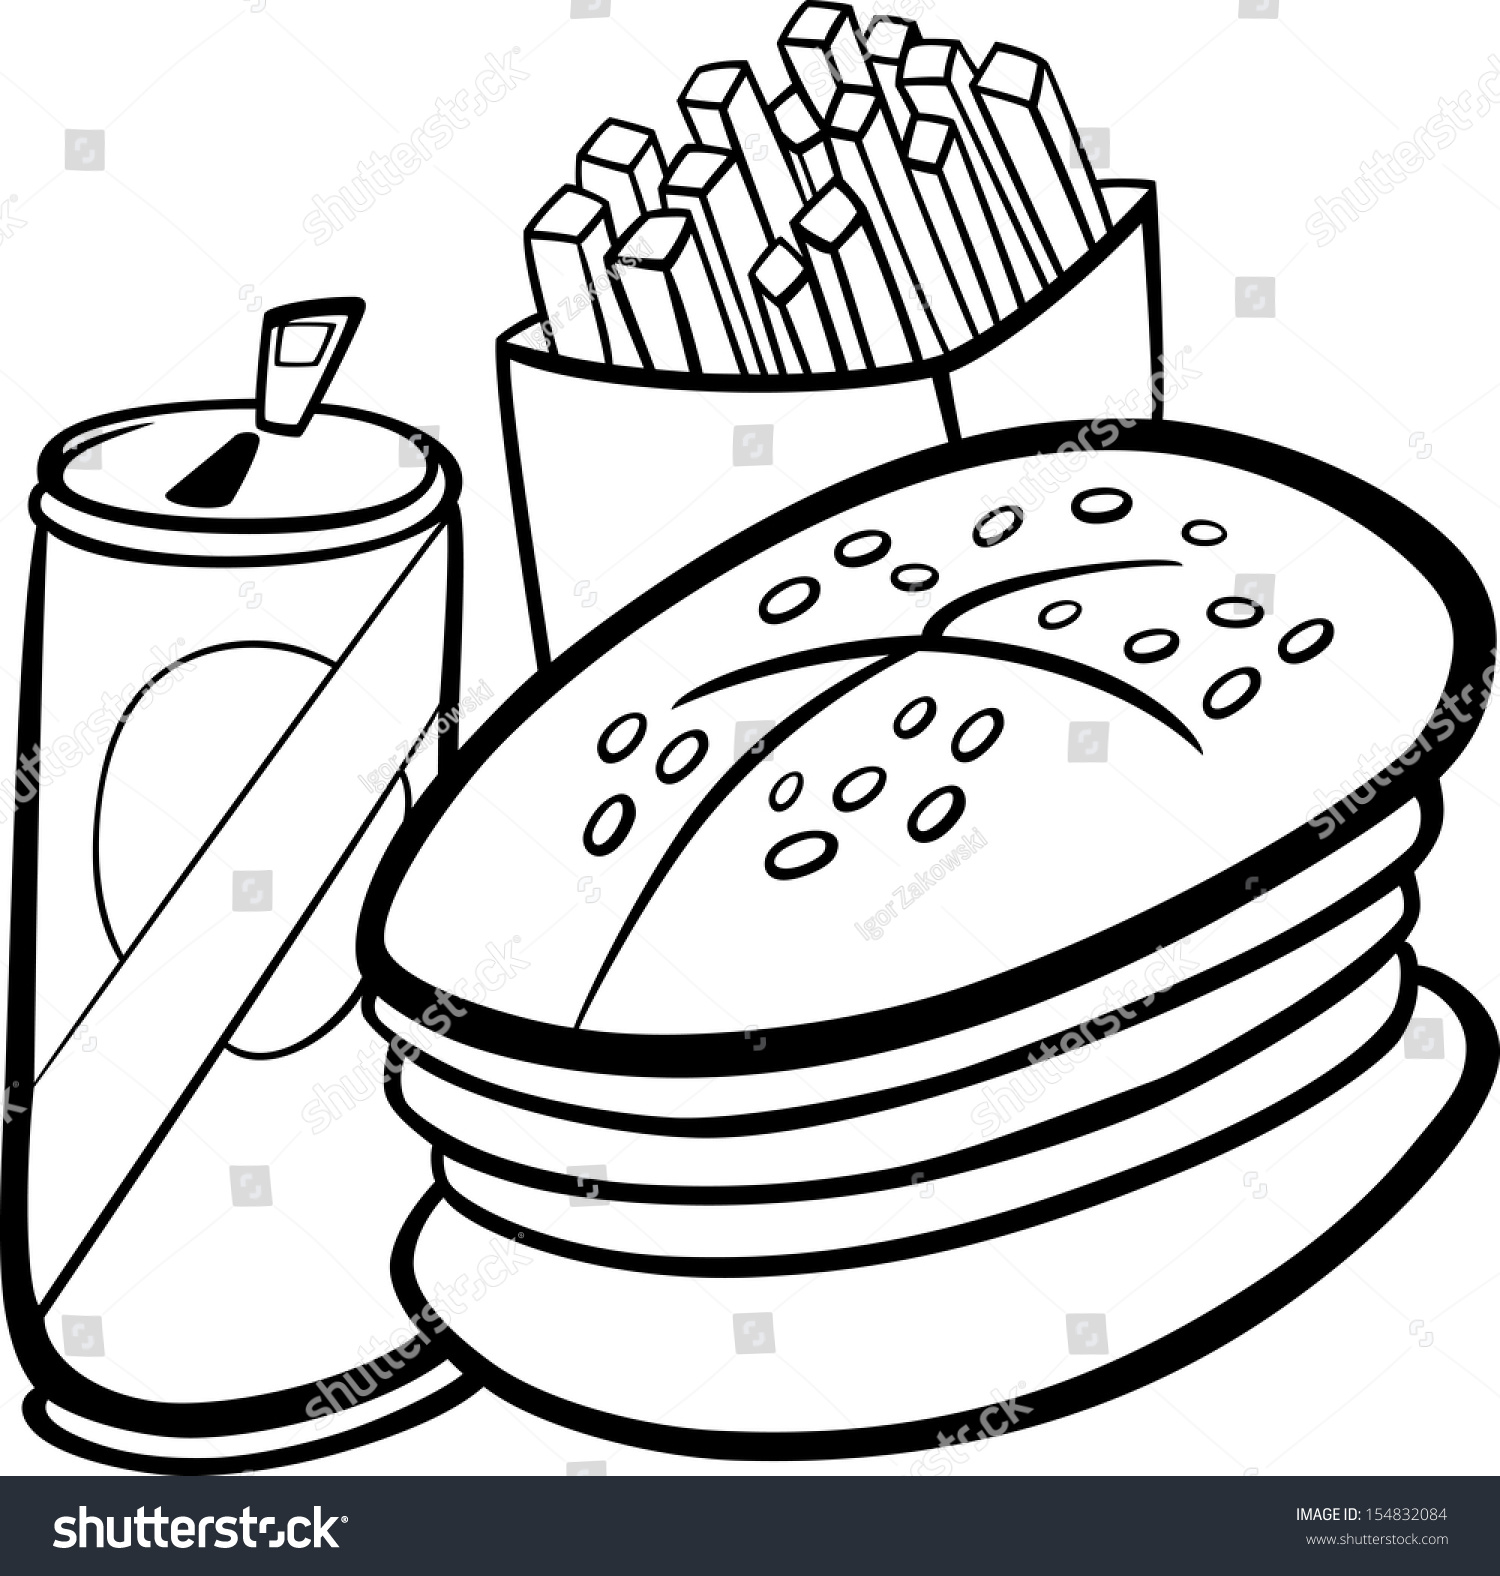 free black white food clipart images - photo #8